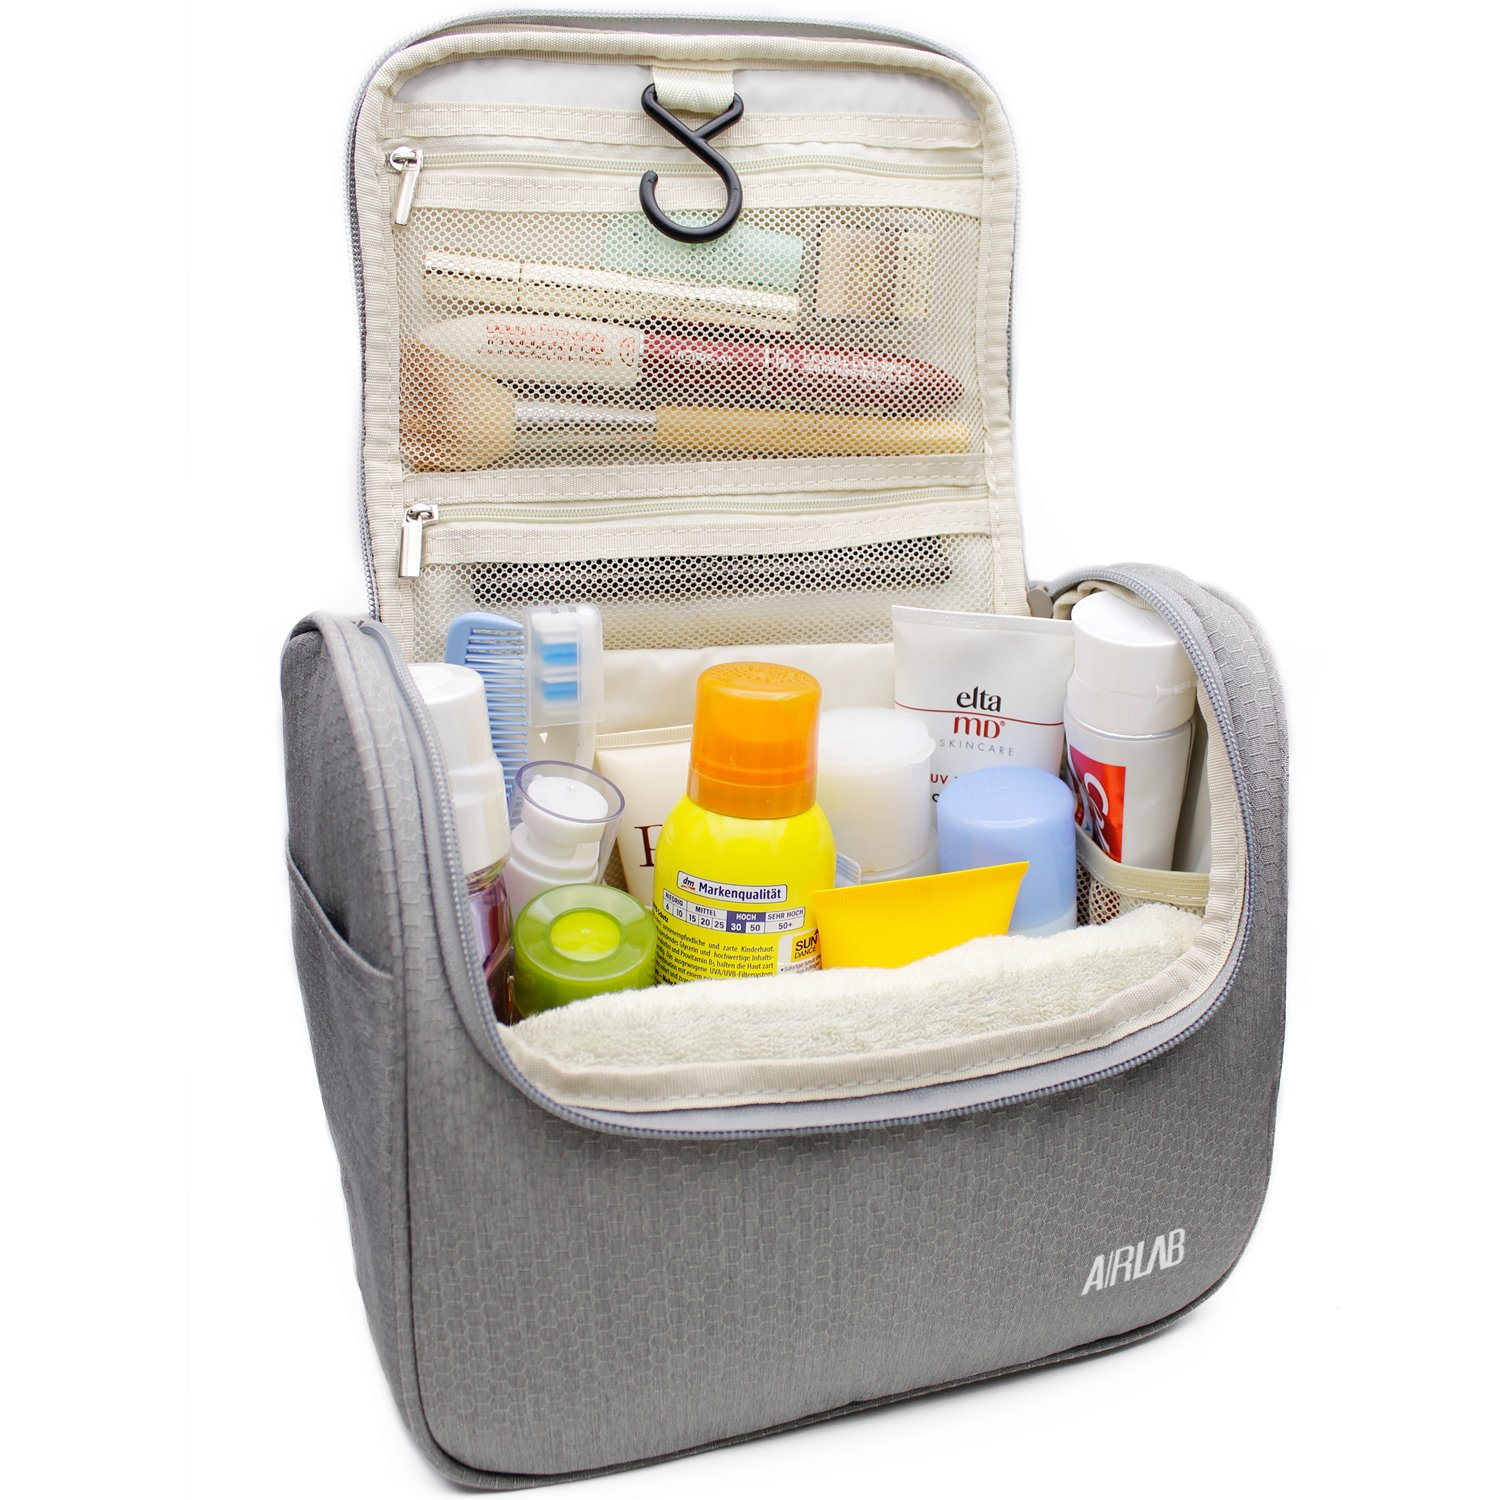 Hanging Toiletry Bag, Airlab Large Cosmetic Bag with Handle and Hook, Travel Toiletry Organizer for Men and Women, Size: 9.45 x 7.65 x 5 inch, Gray